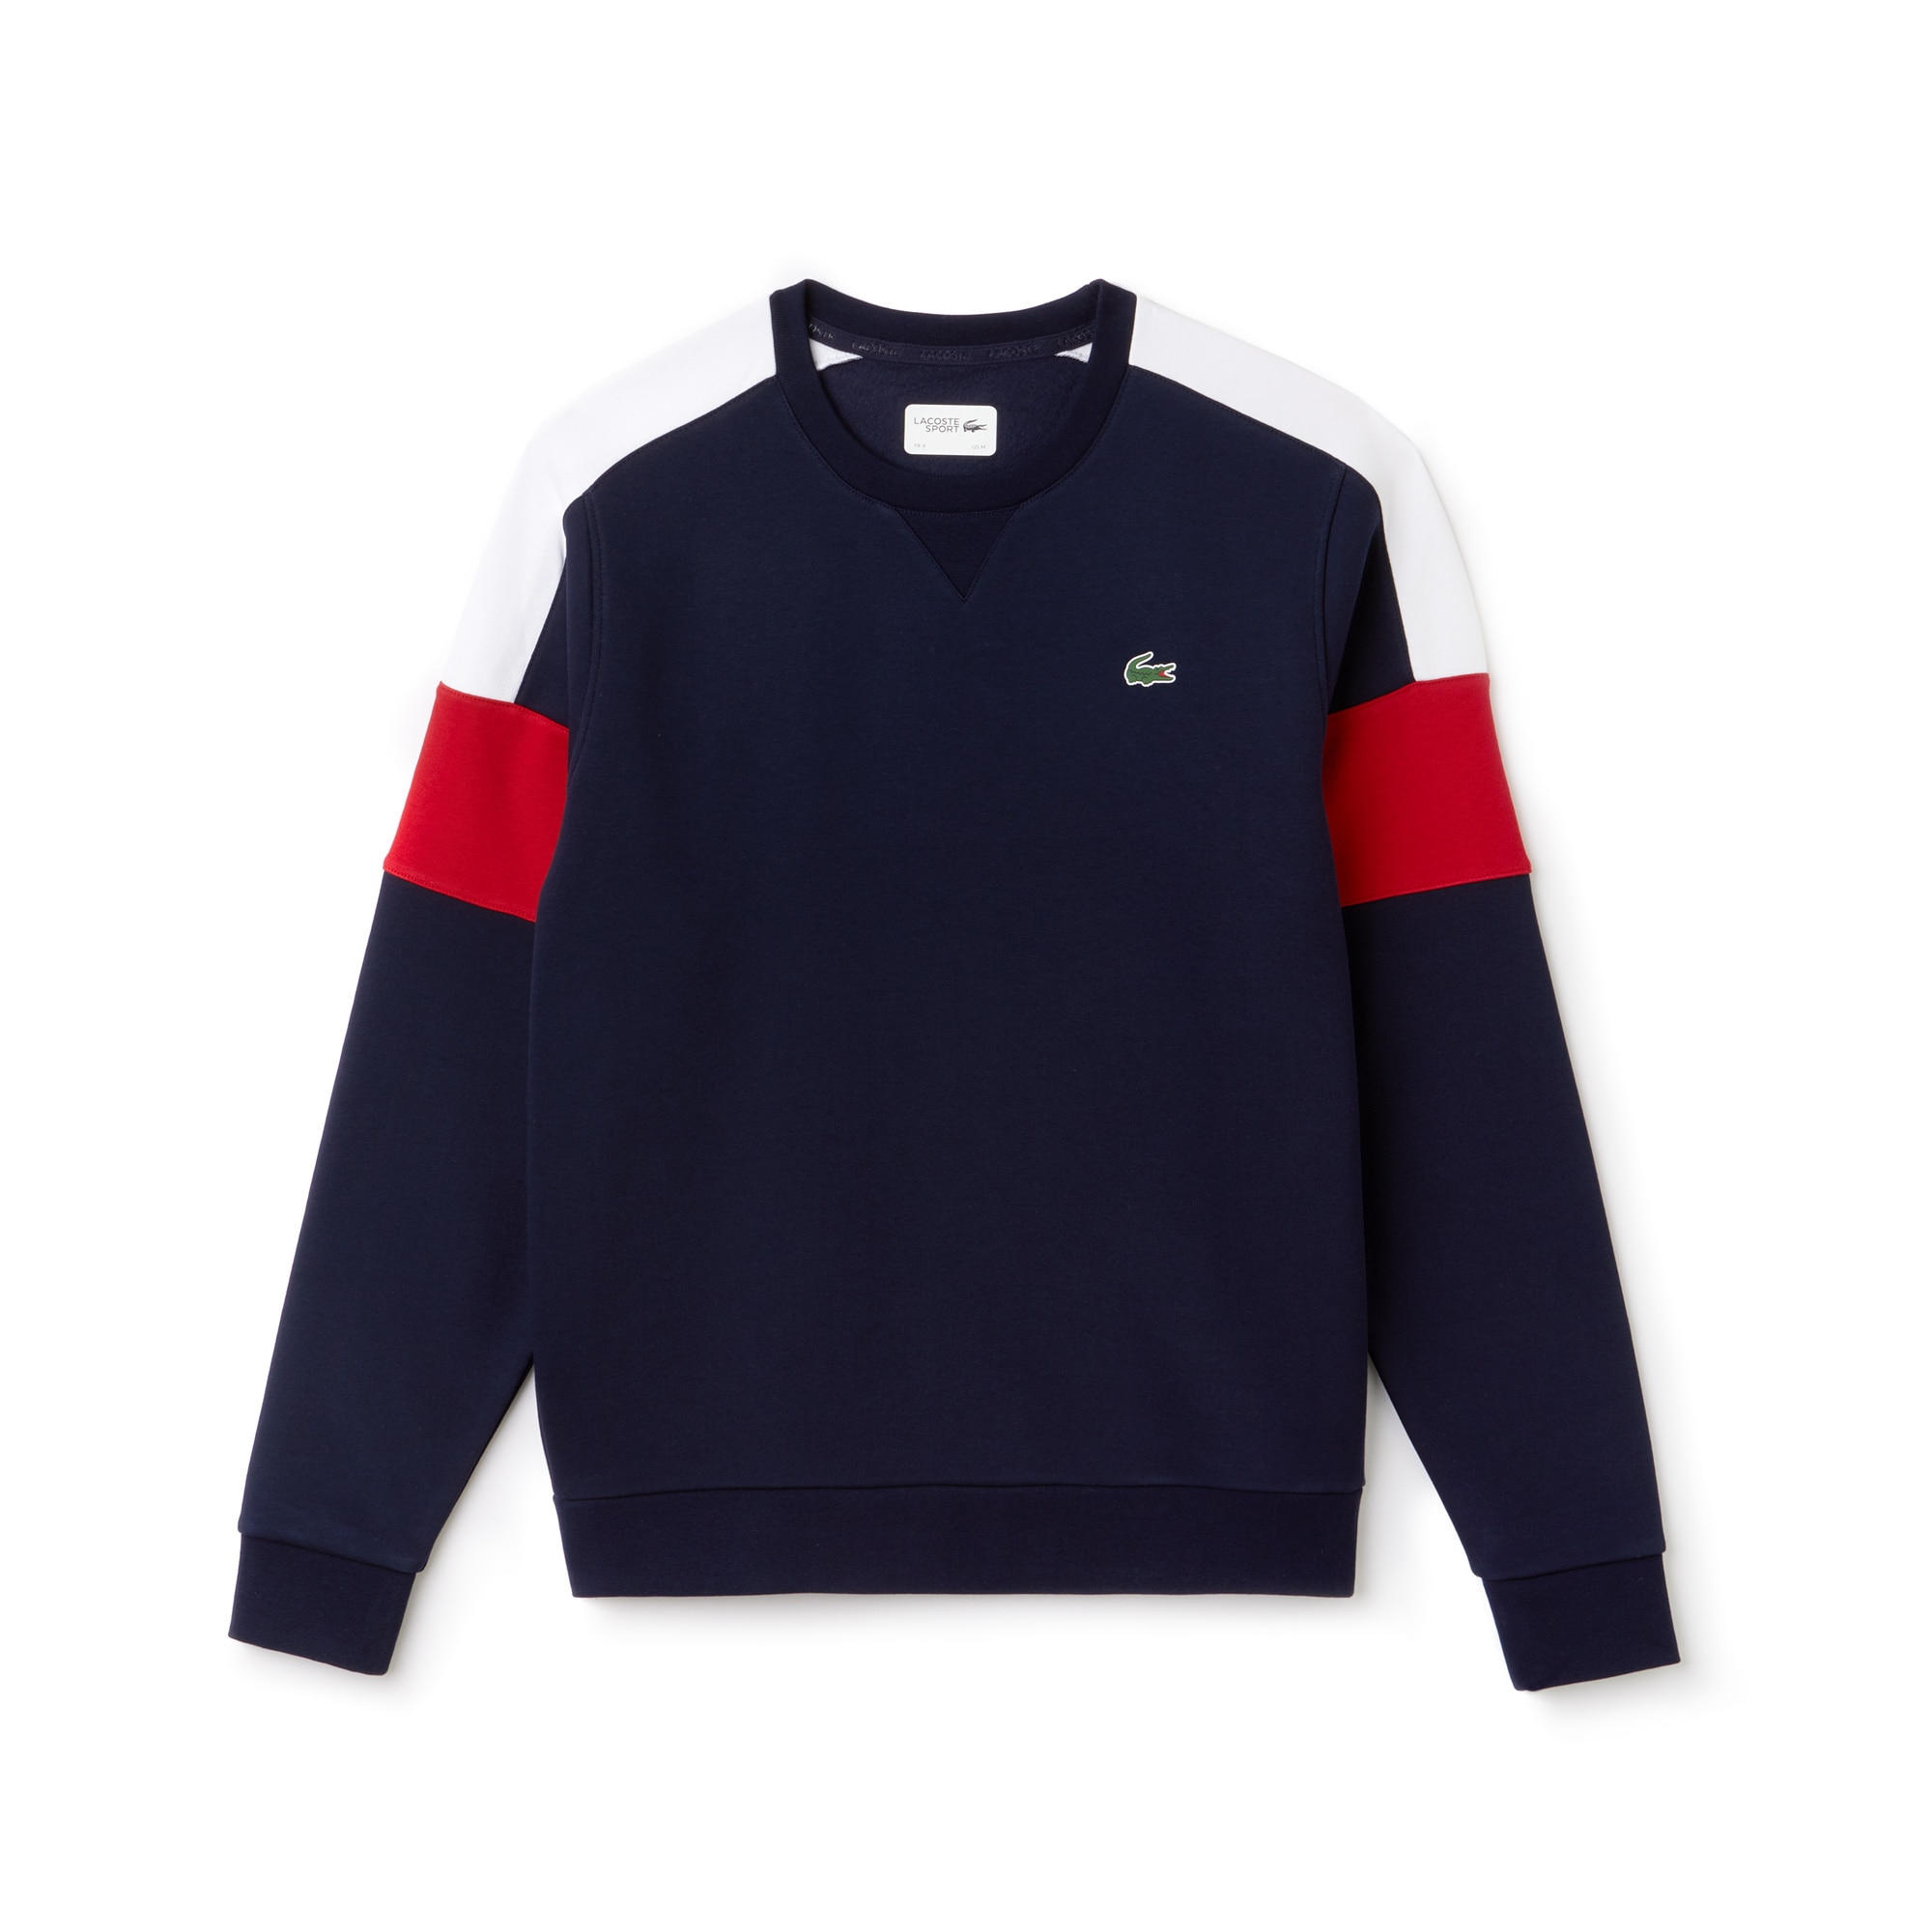 Lacoste SPORT Tennis-sweatshirt heren fleece met colorblock